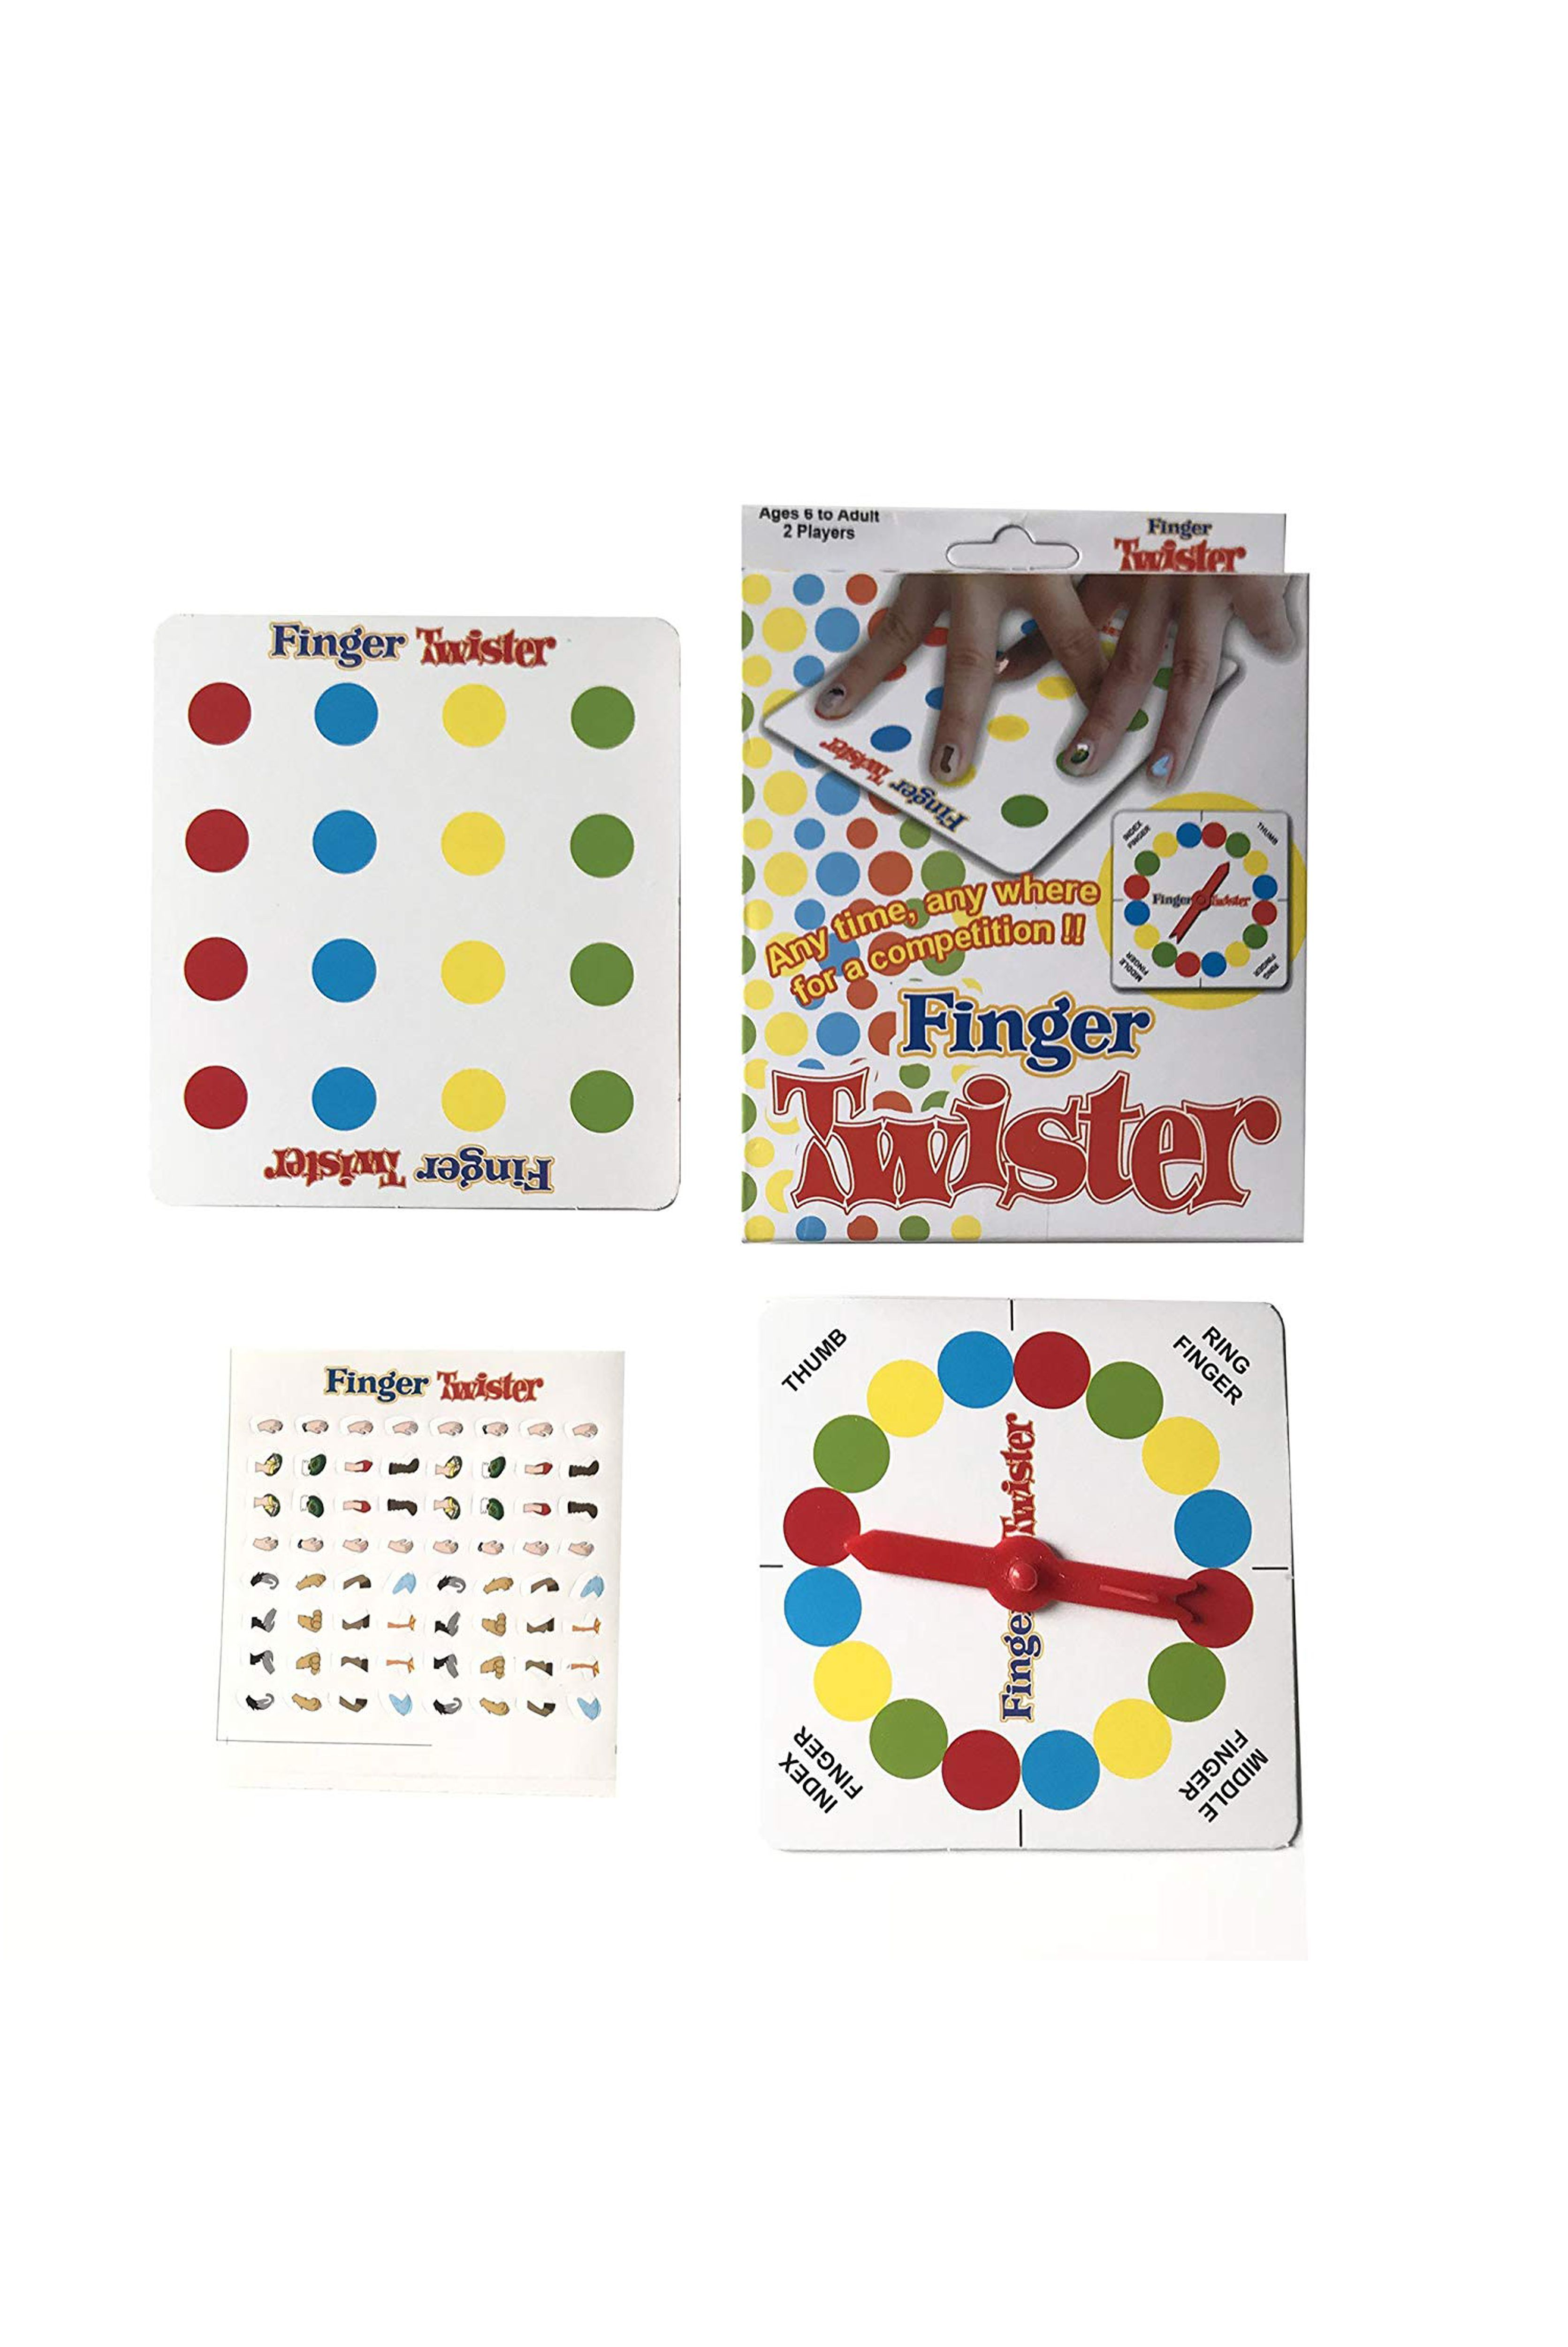 photograph relating to Finger Twister Printable named USUNO Amusing Finger Twister Activity